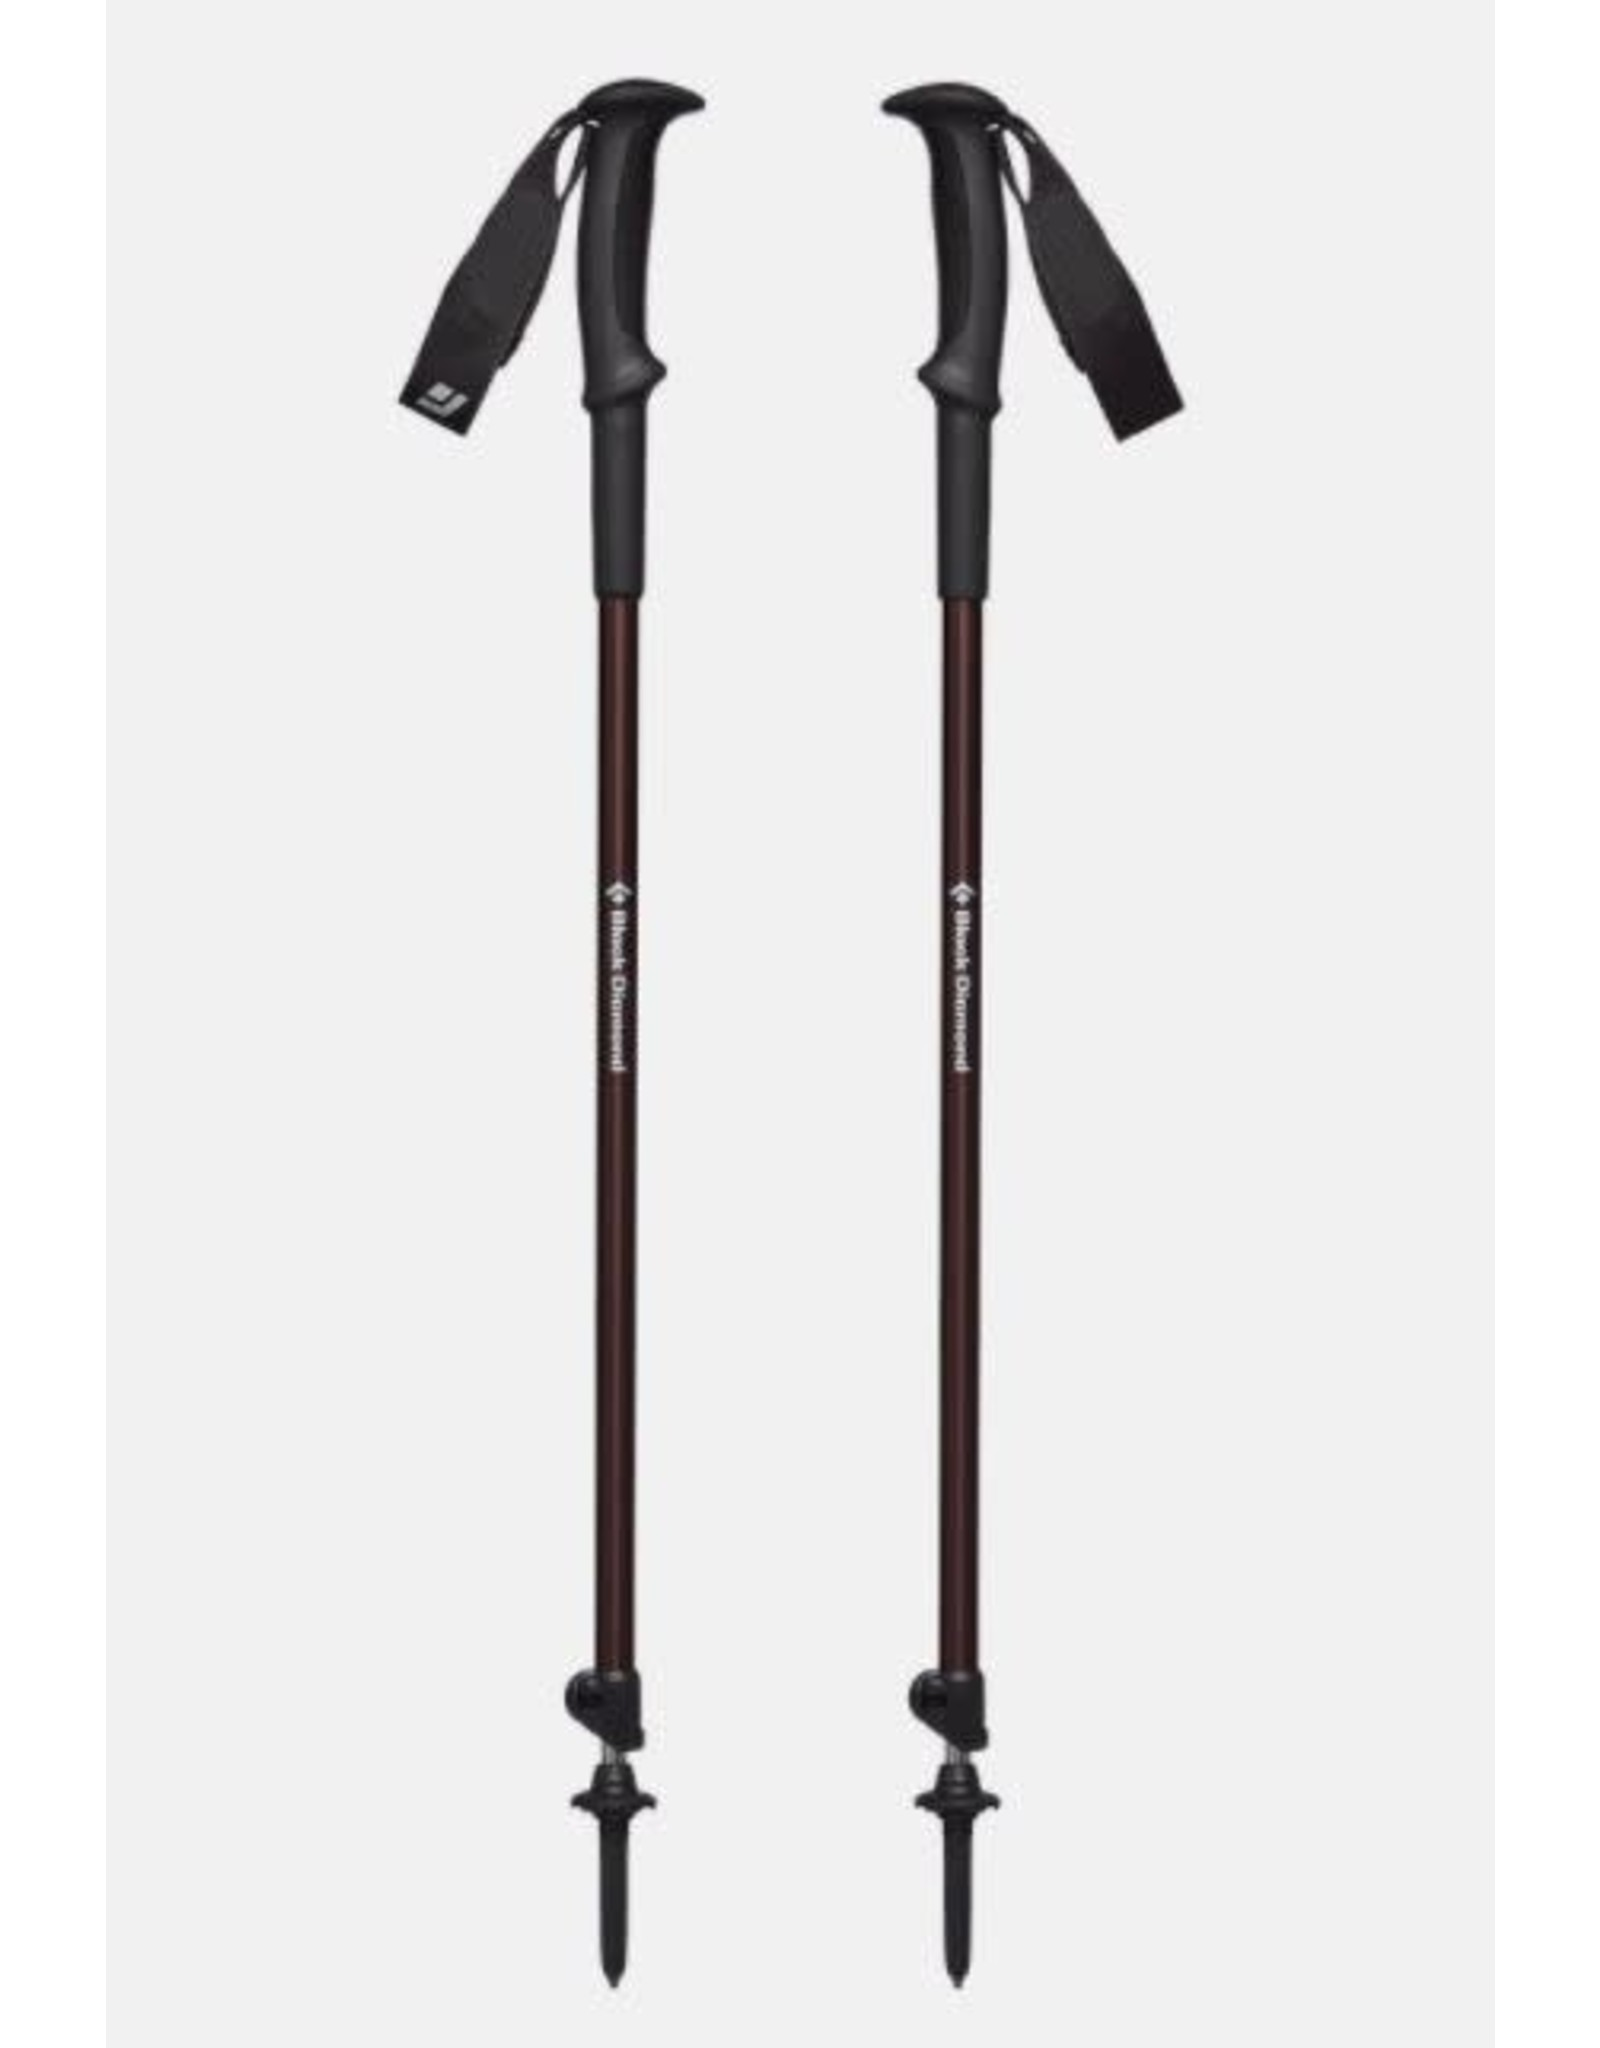 BLACK DIAMOND BLACK DIAMOND TRAIL SPORT 2 HIKING POLES